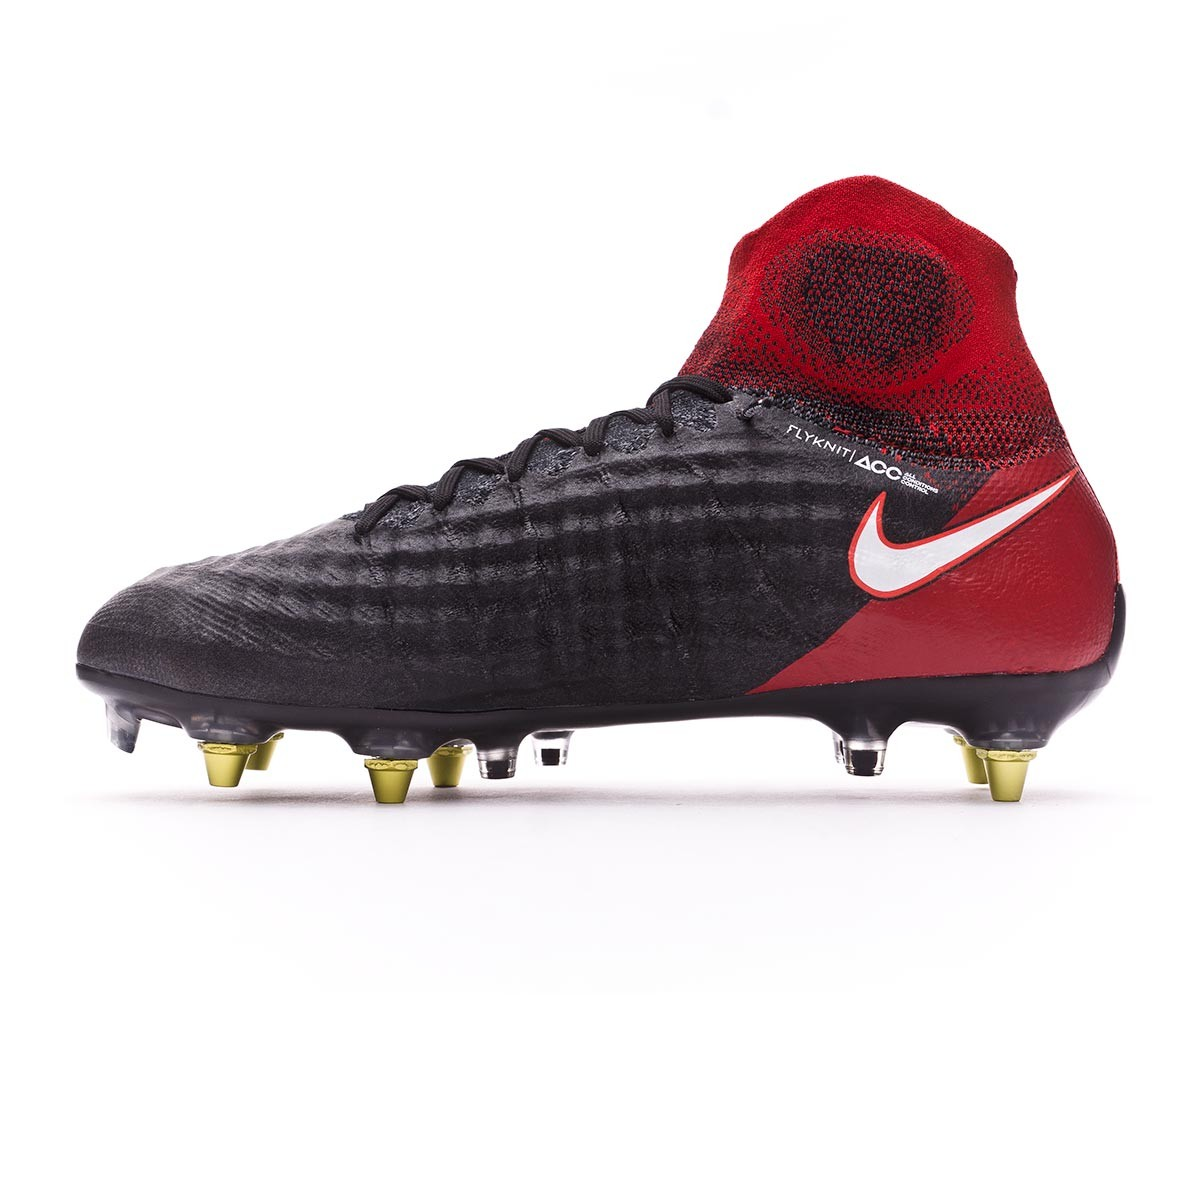 c871bf58f Football Boots Nike Magista Obra II ACC SG-Pro Anti-Clog Black-White-University  red - Football store Fútbol Emotion